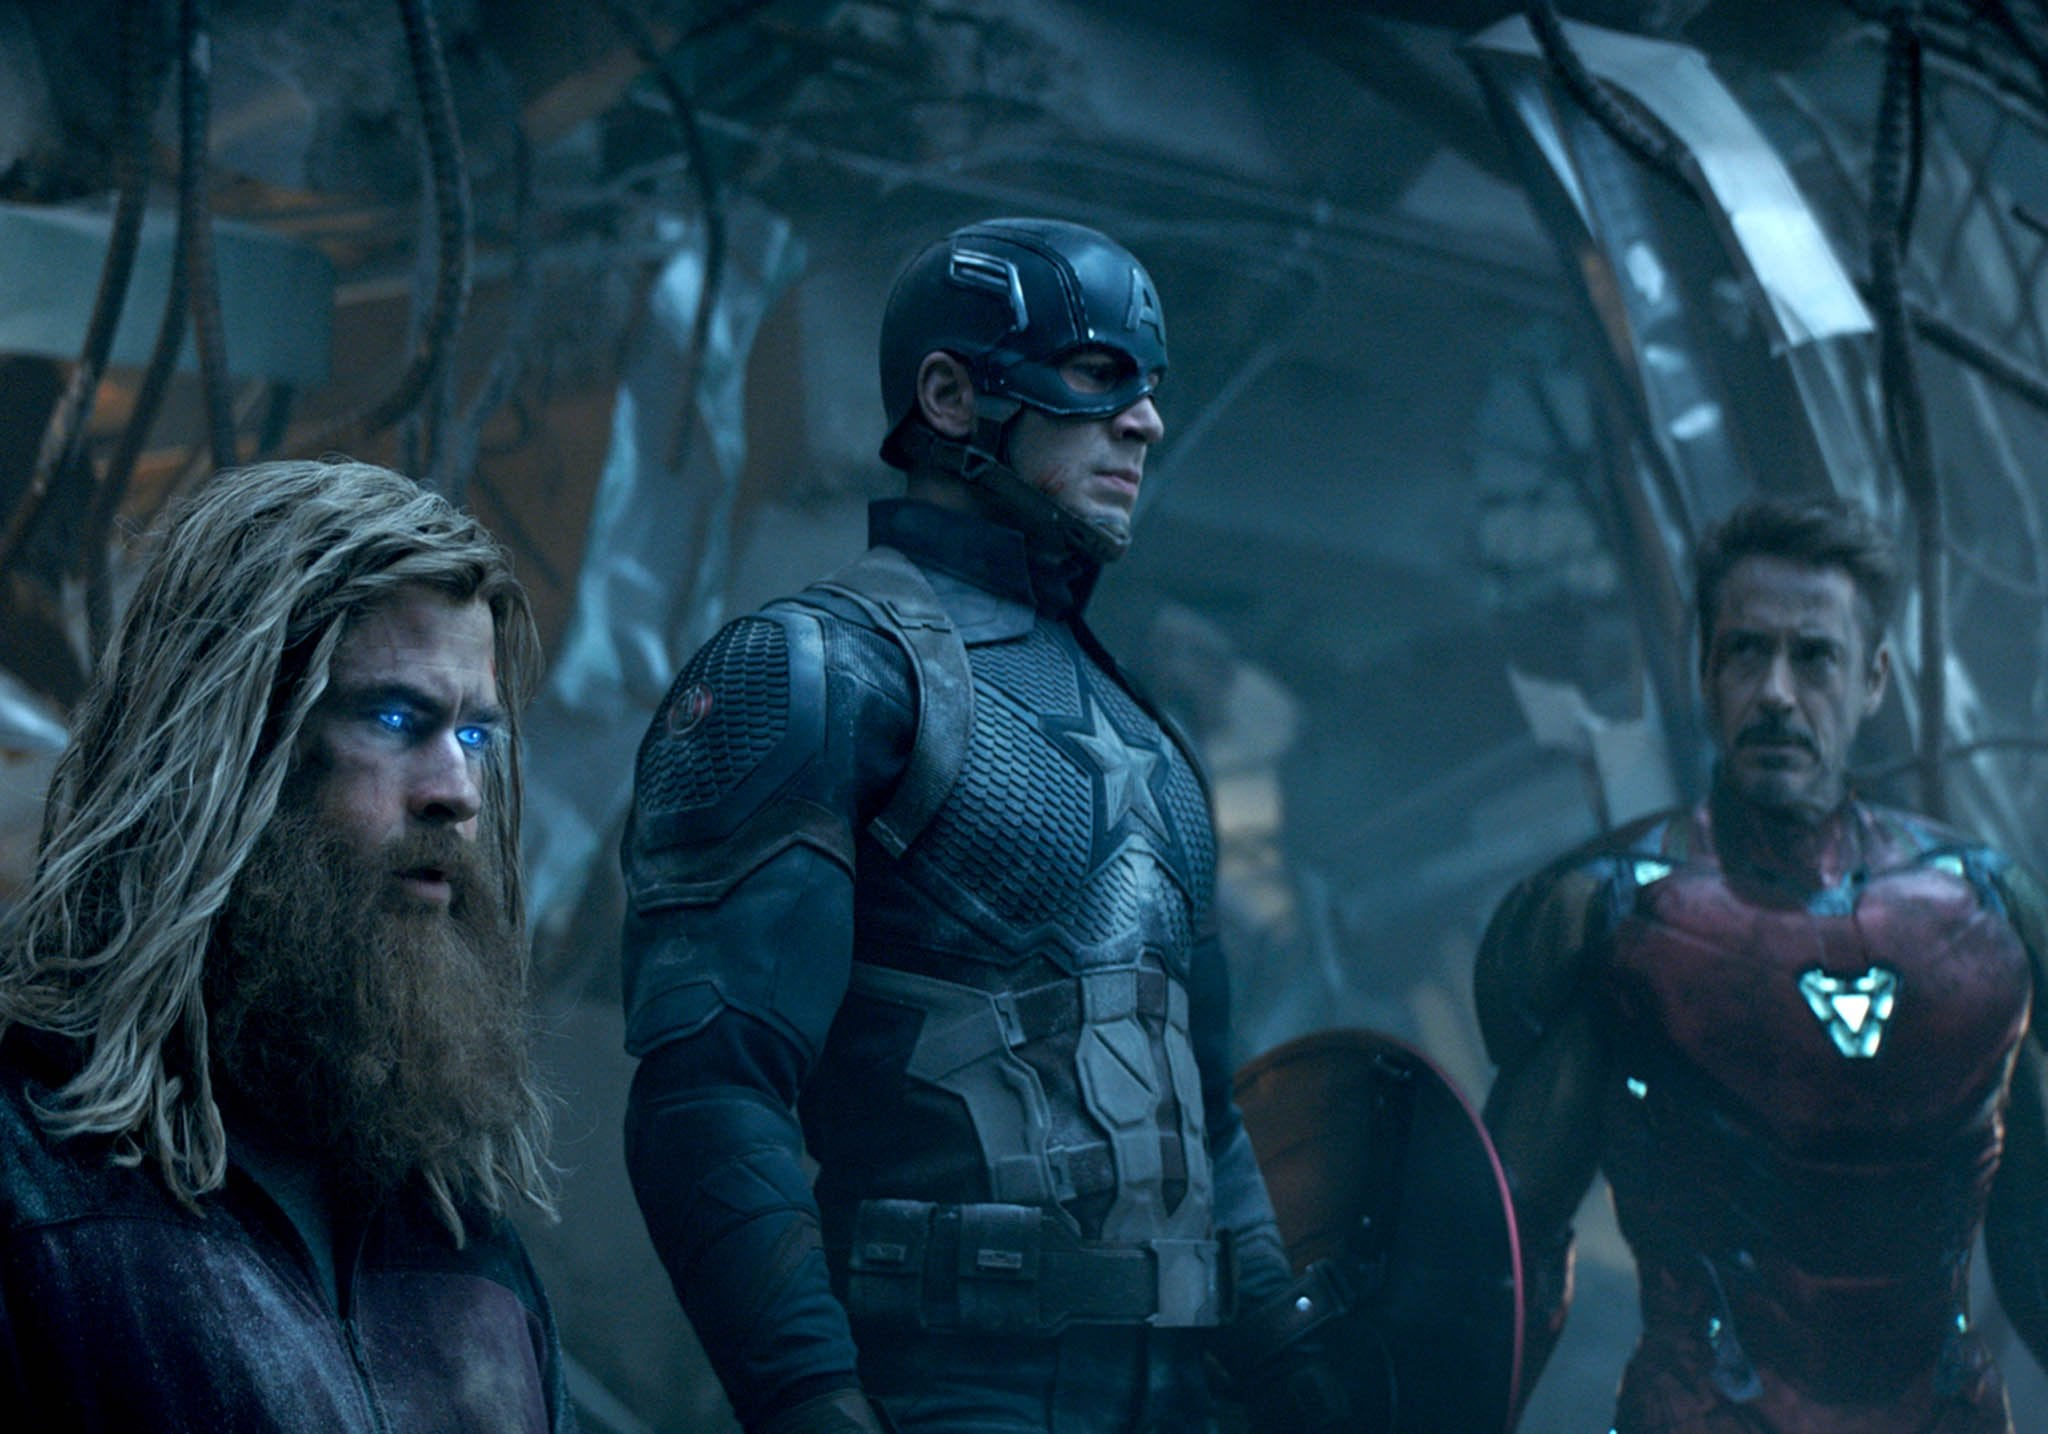 THOR, CAP AND TONY